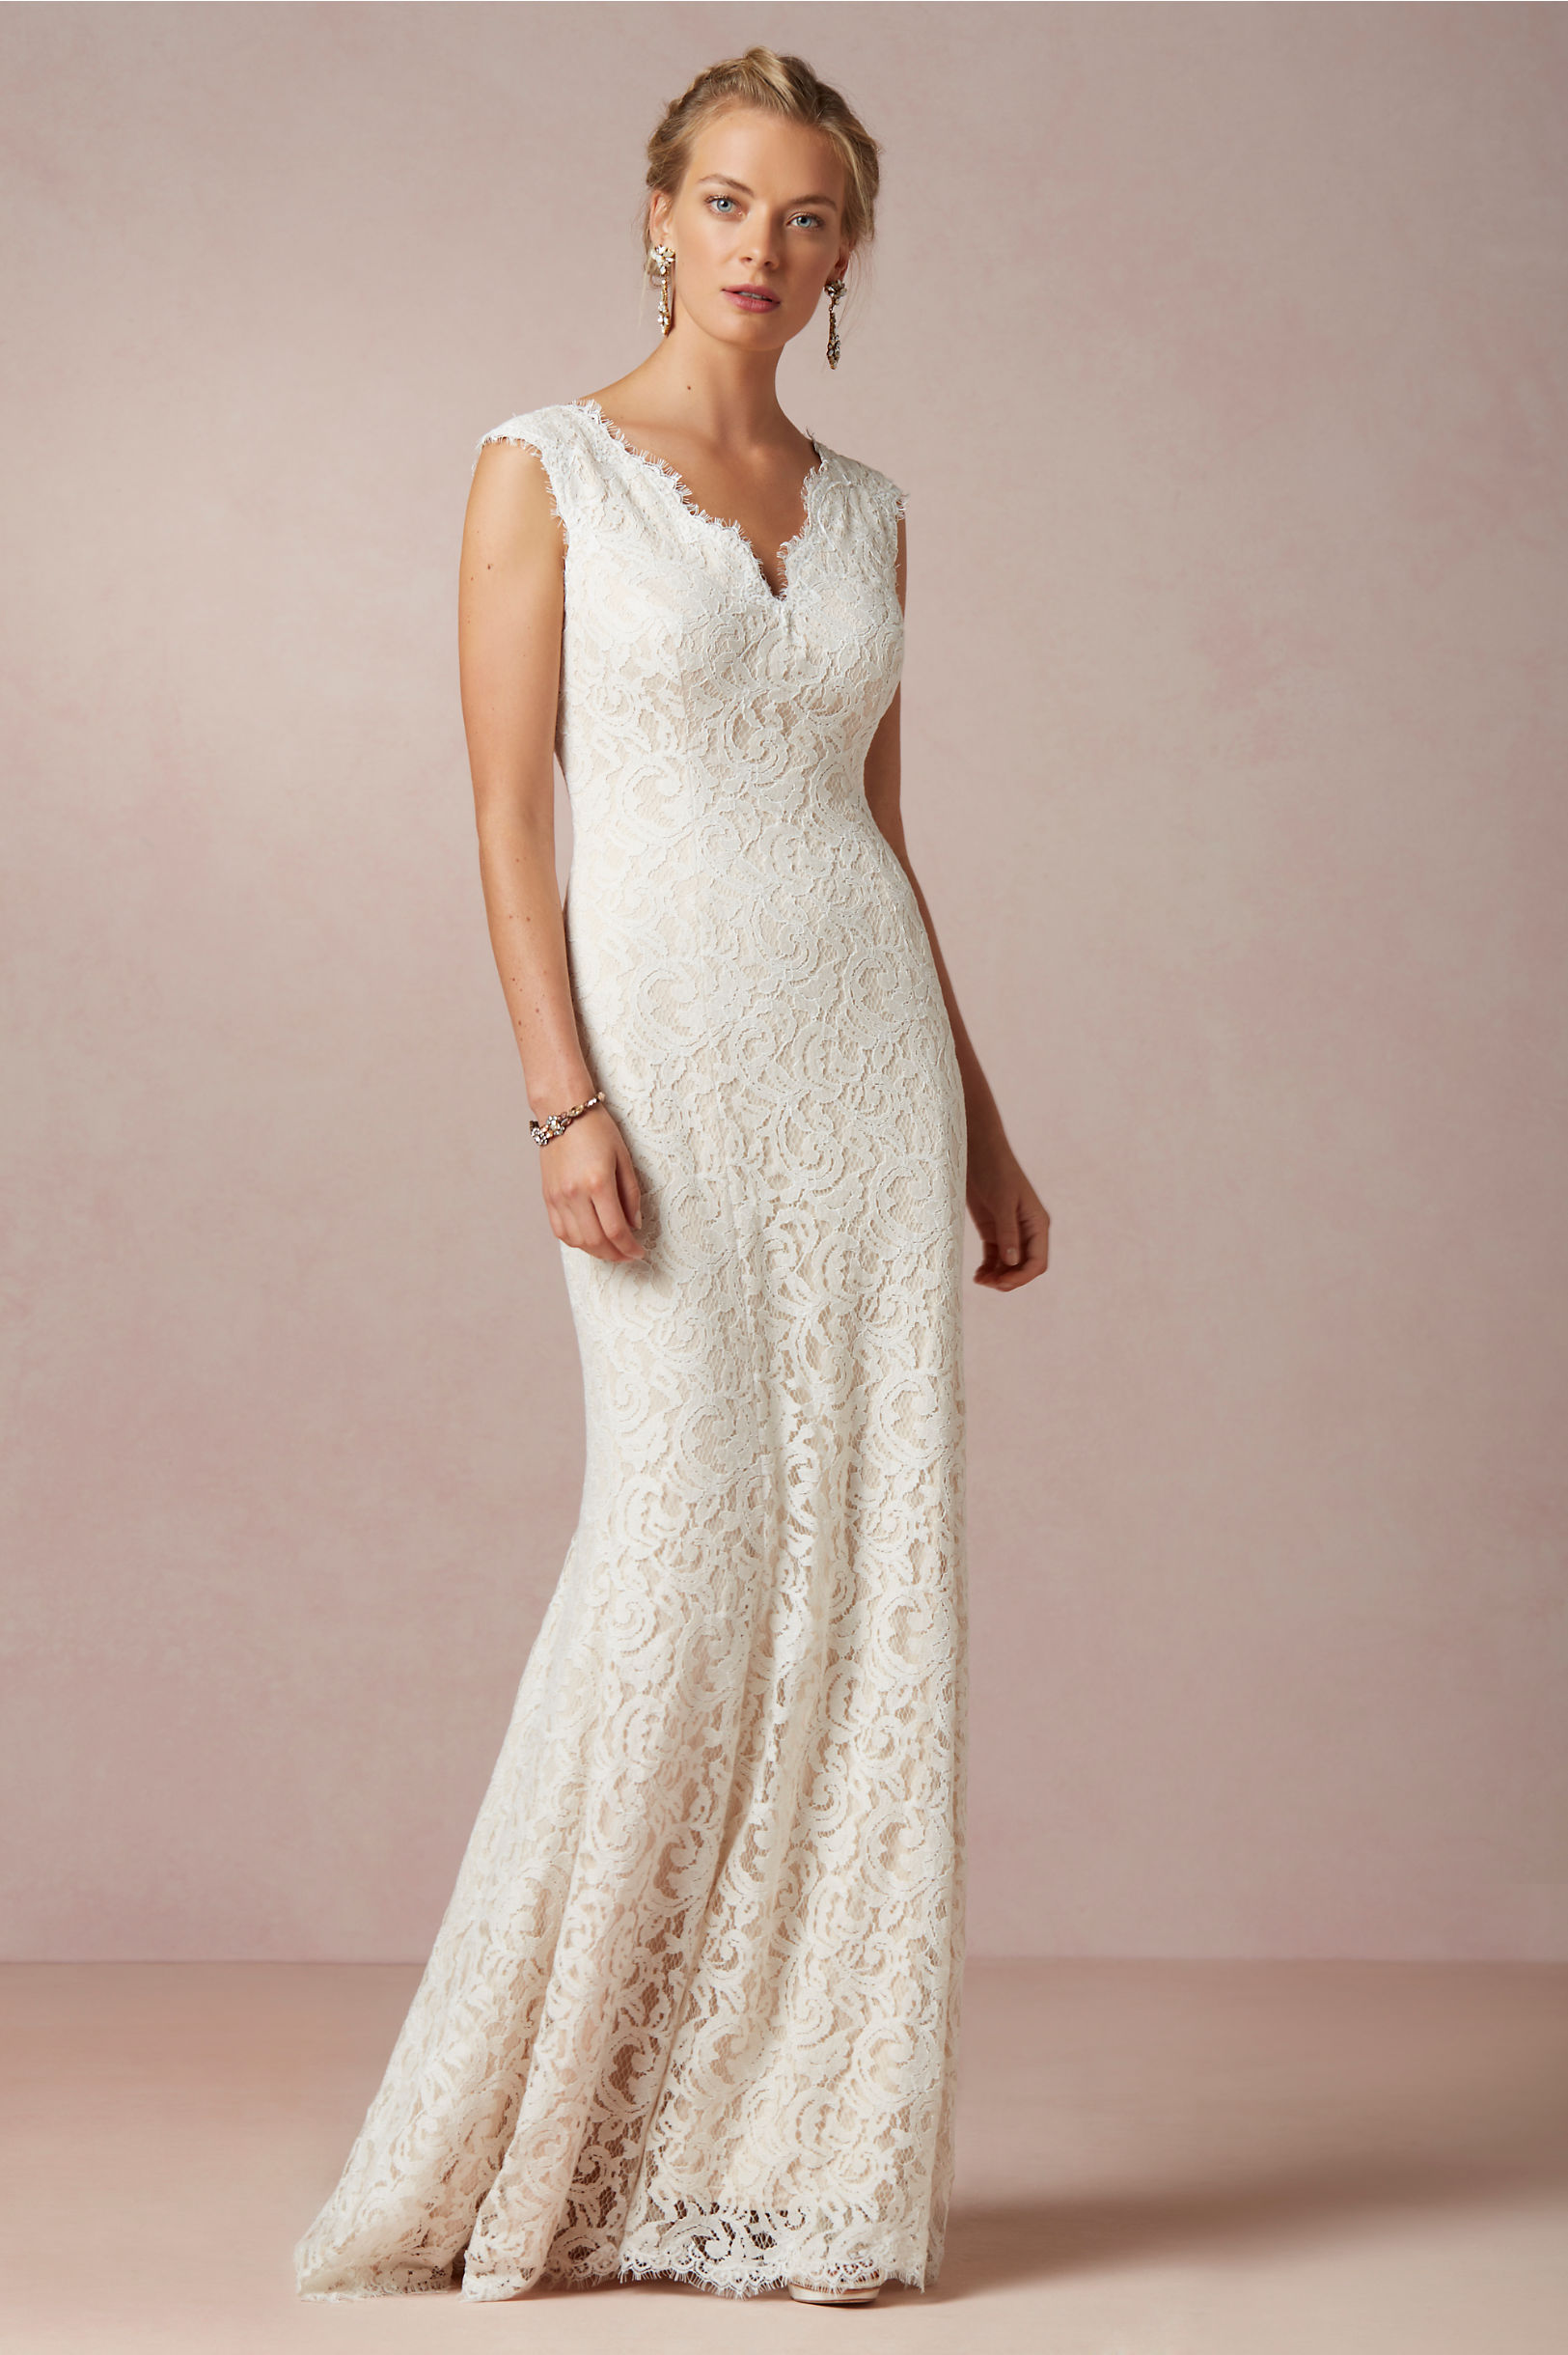 Scalloped V Neck Sheath Lace Pattern Wedding Dress